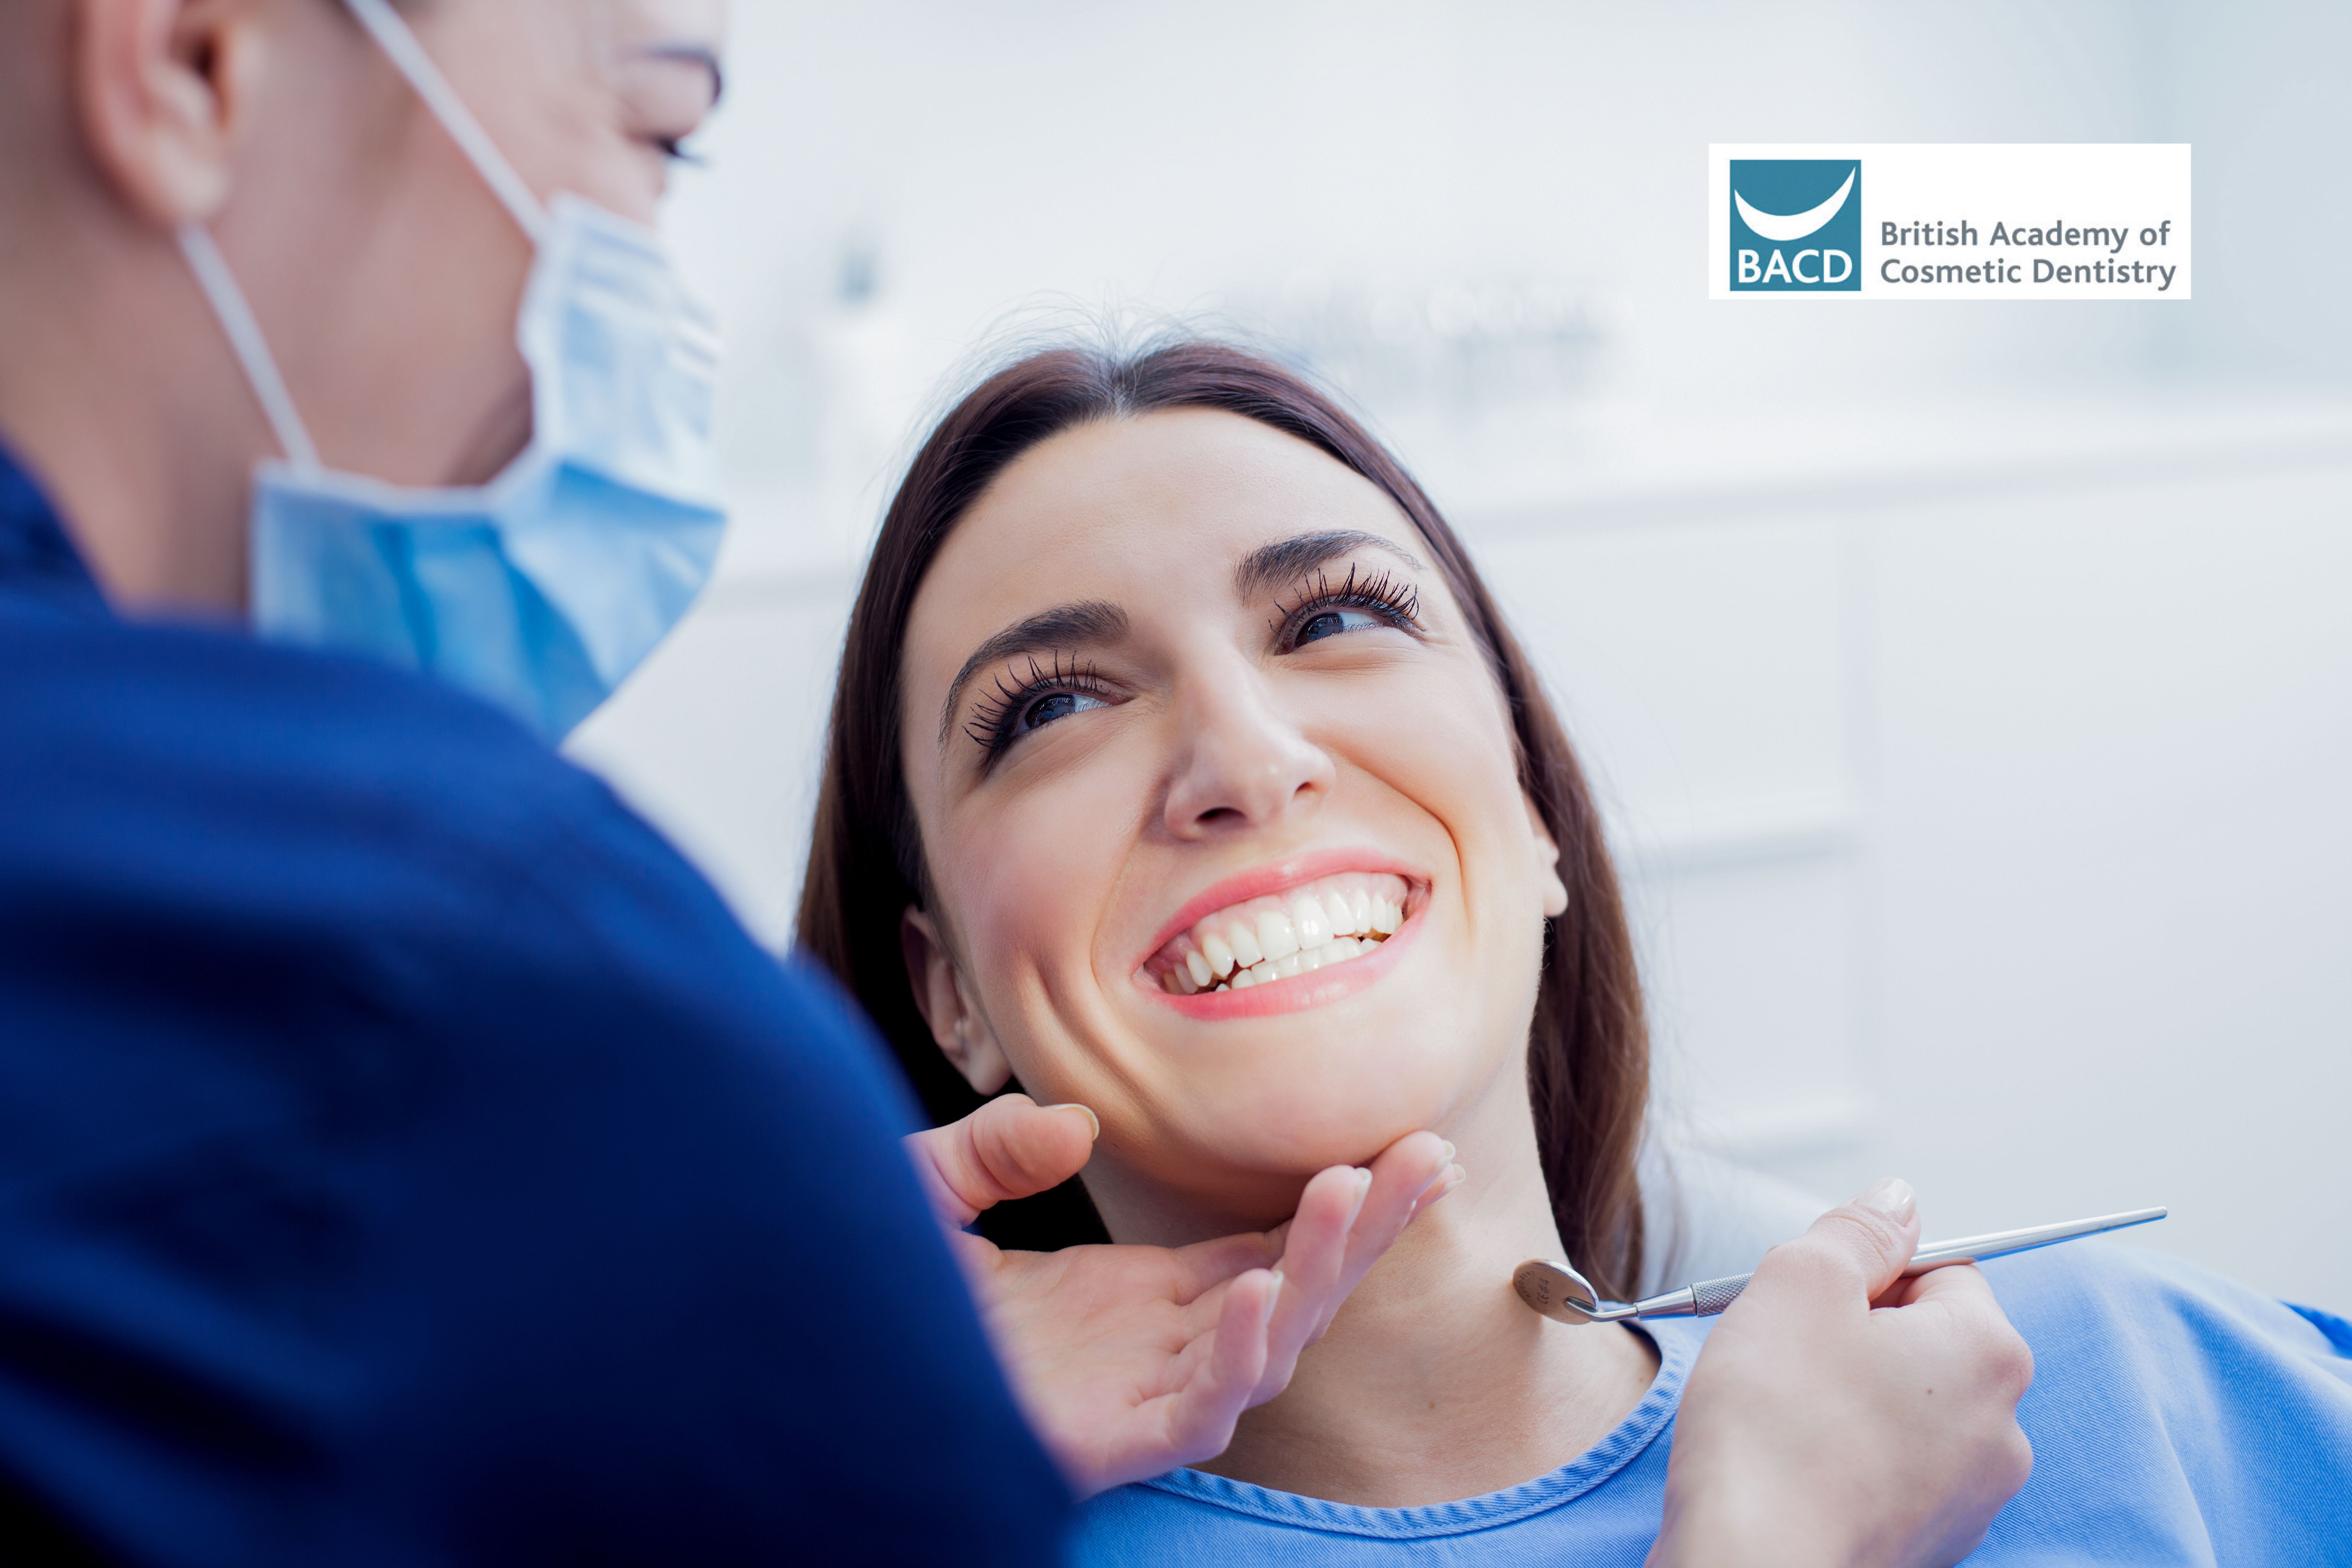 Innovative Dentistry Within Your Reach